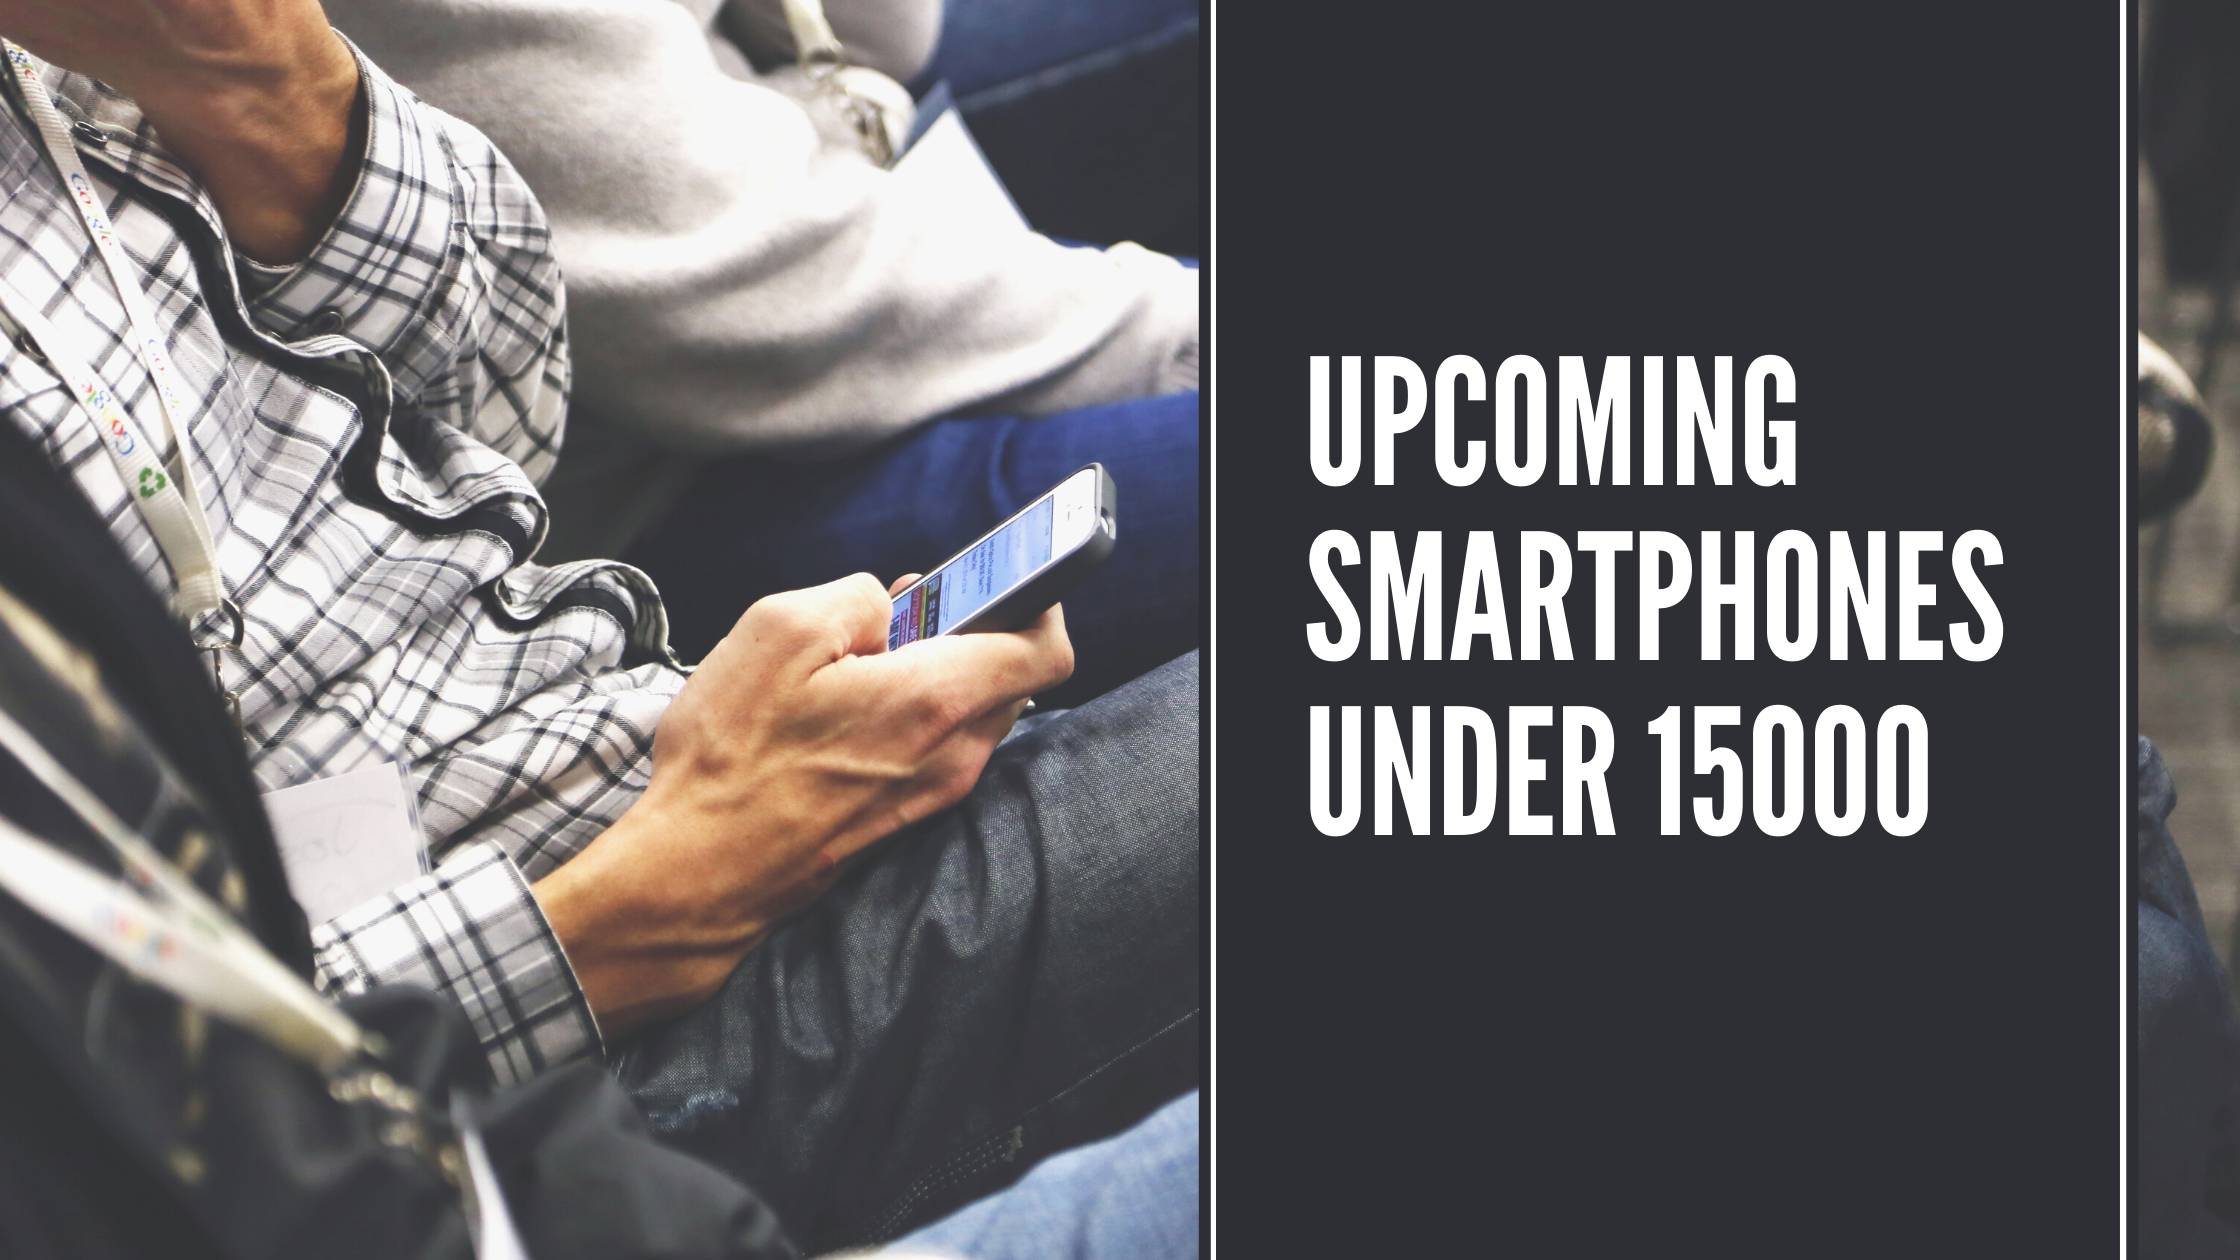 Upcoming Smartphones under 15000